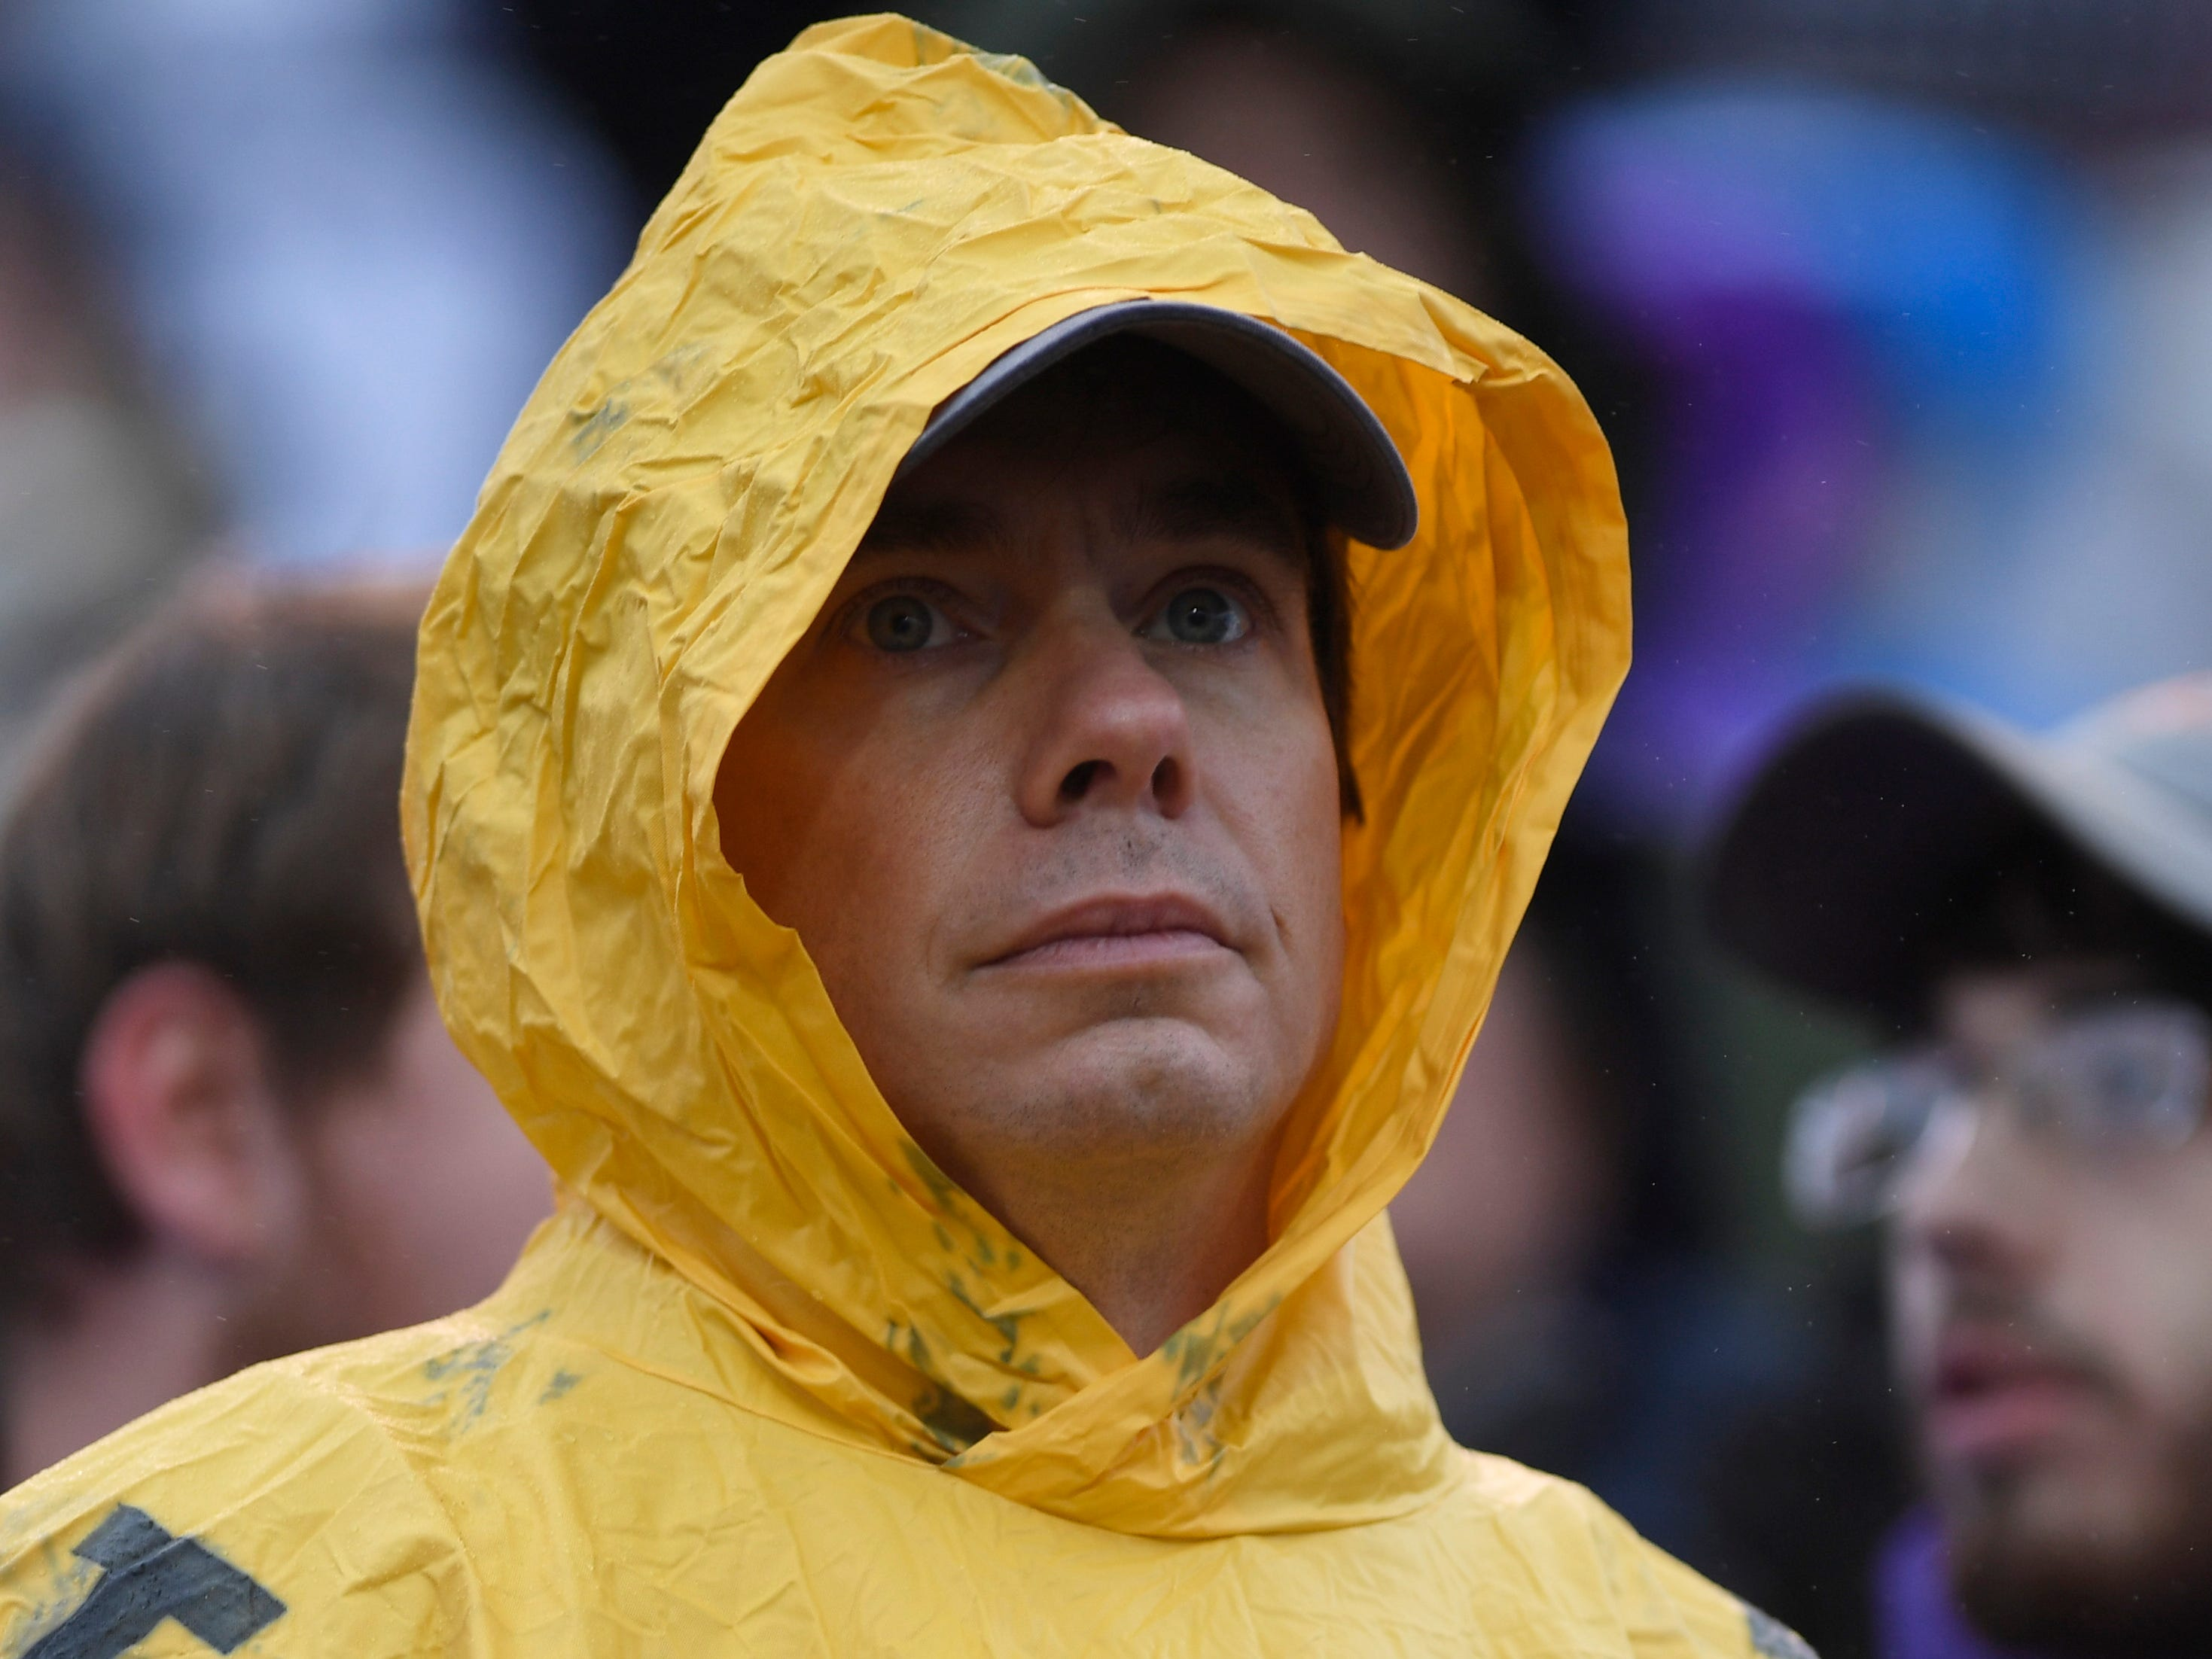 A fan is prepared for the weather during the Class 4A BlueCross Bowl state championship at Tennessee Tech's Tucker Stadium in Cookeville, Tenn., on Thursday, Nov. 29, 2018.